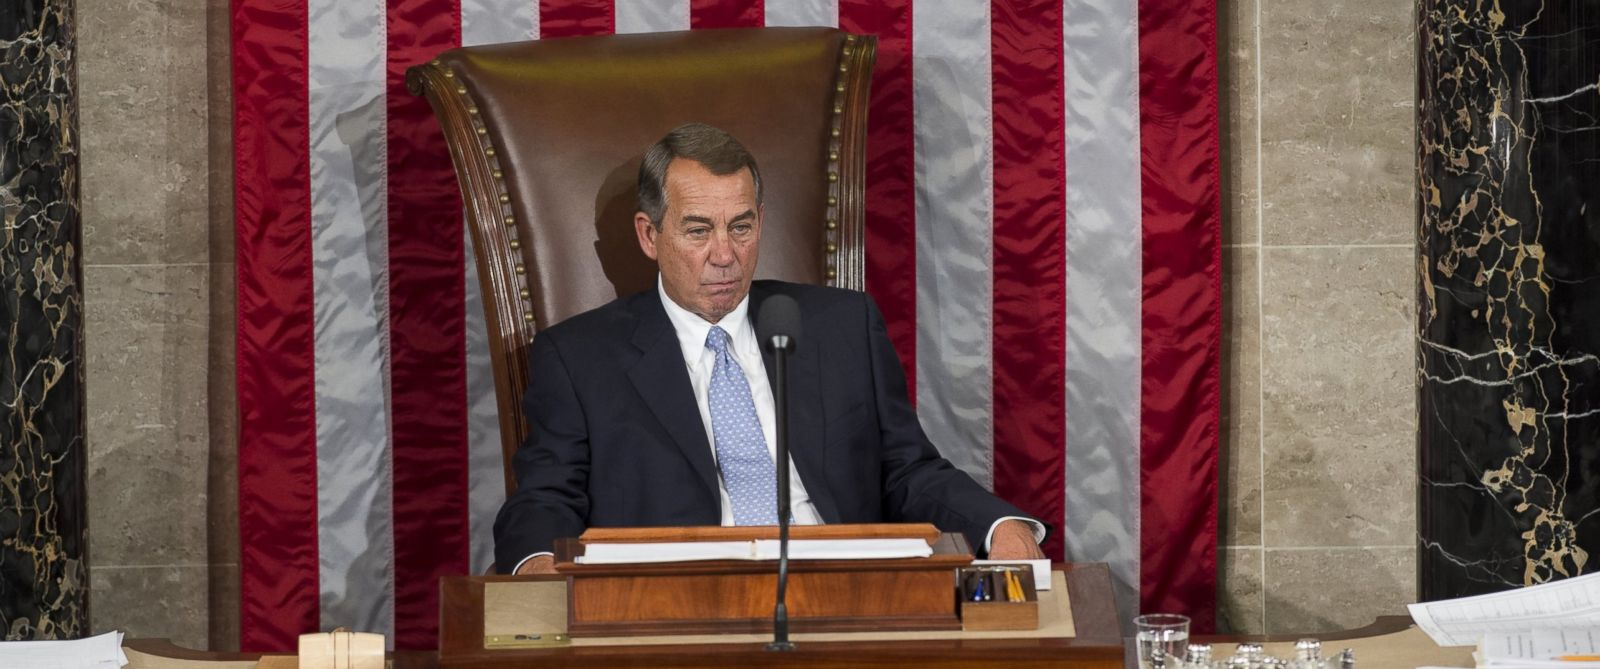 PHOTO: Outgoing Speaker John Boehner sits in the Speakers chair for the final time as Speaker in the House Chamber at the US Capitol in Washington, Oct. 29, 2015.